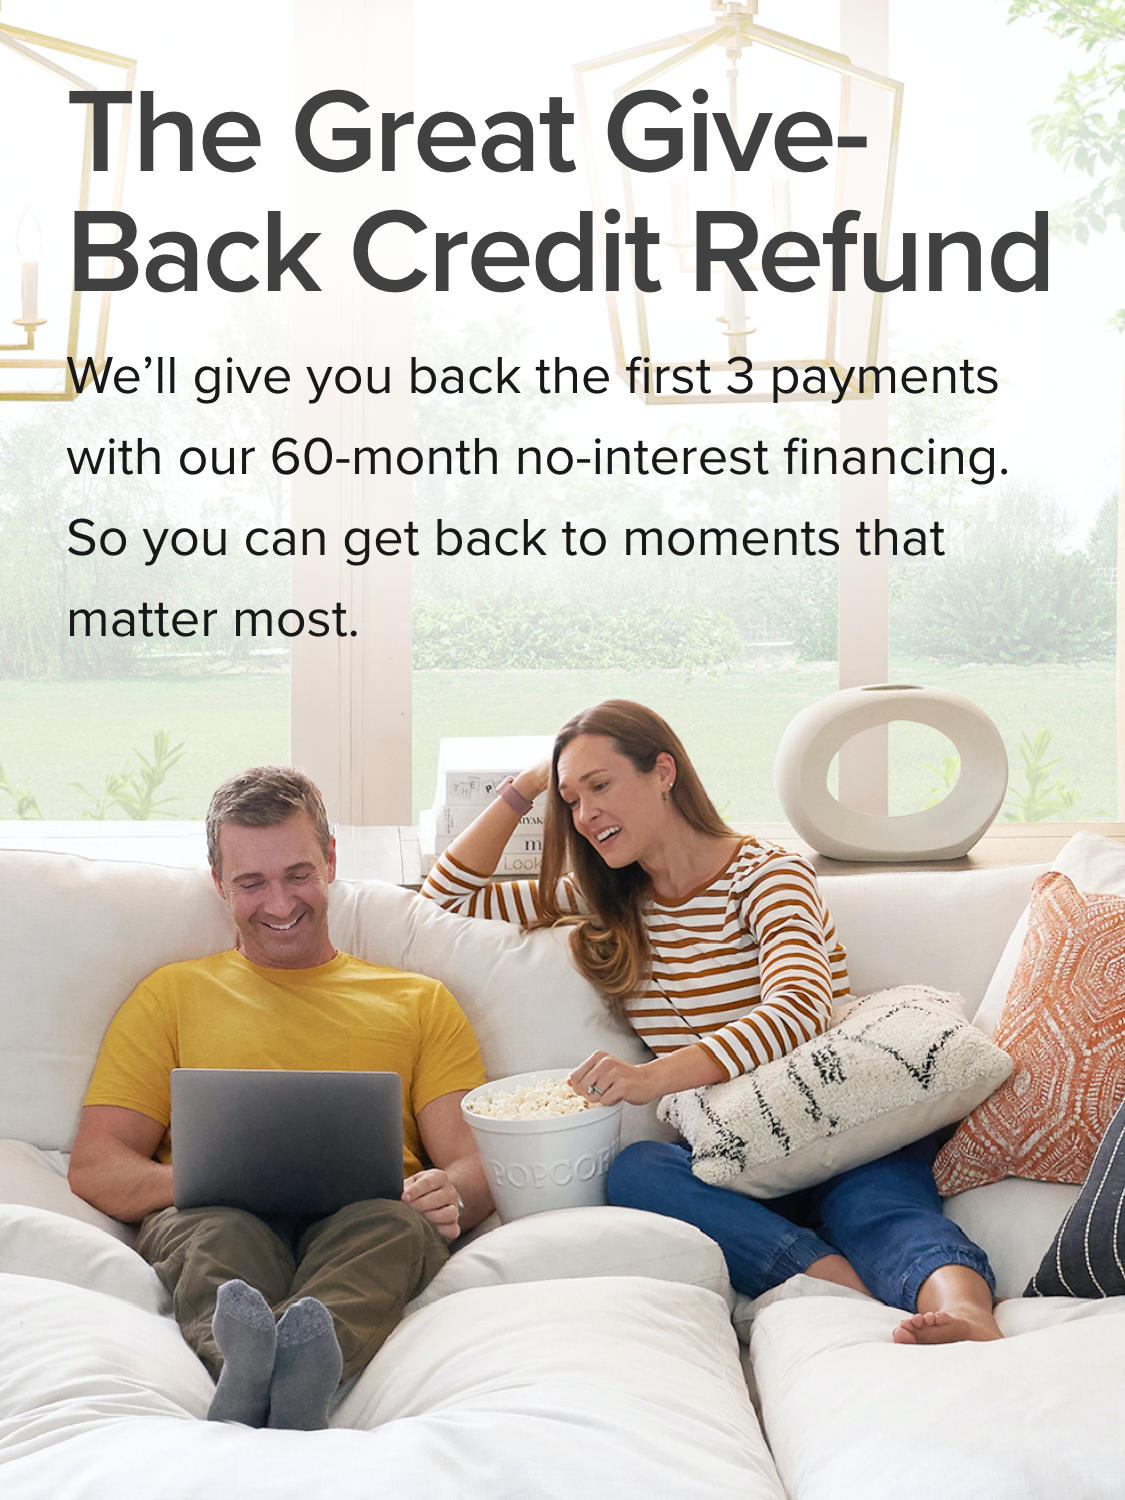 The Great Give-Back Credit Refund